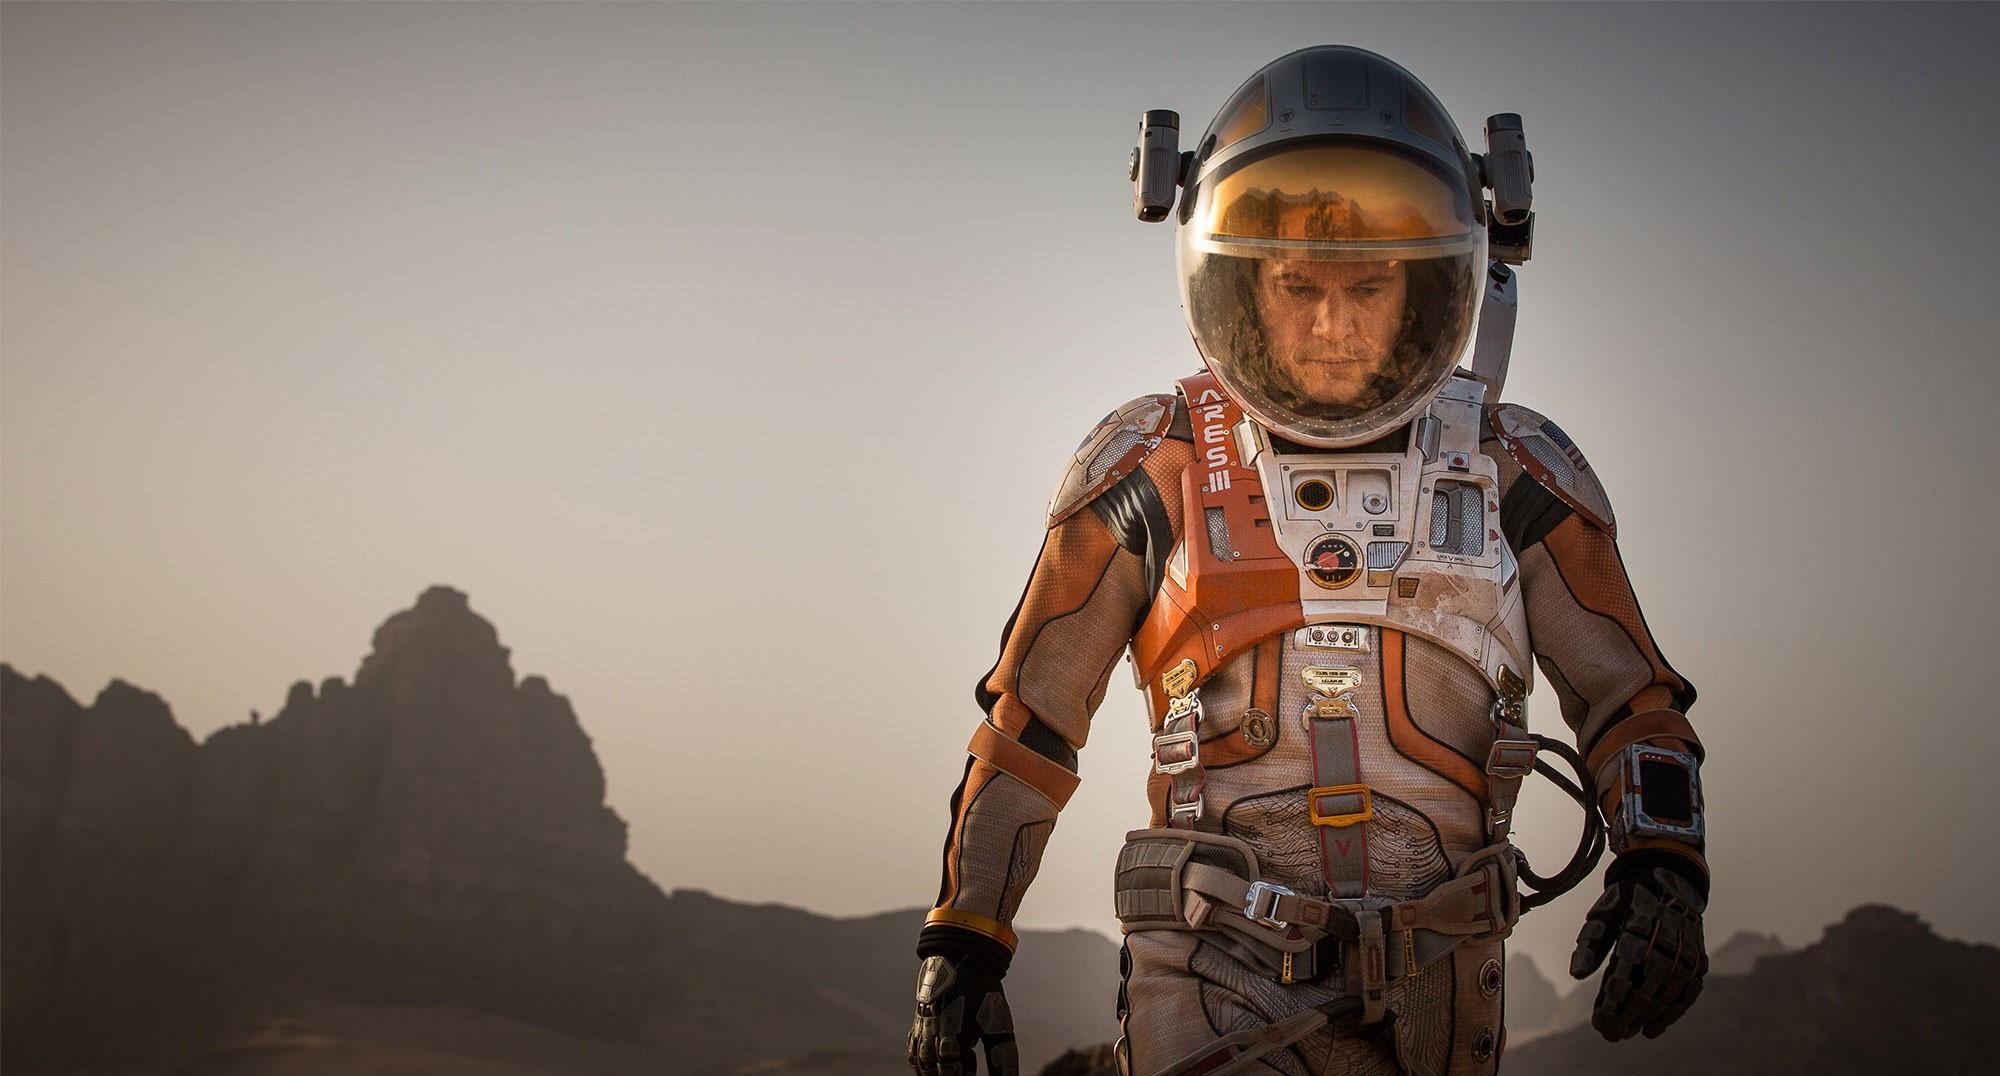 'The Martian' landed seven nominations, but Ridley Scott was shockingly left off the Best Director list